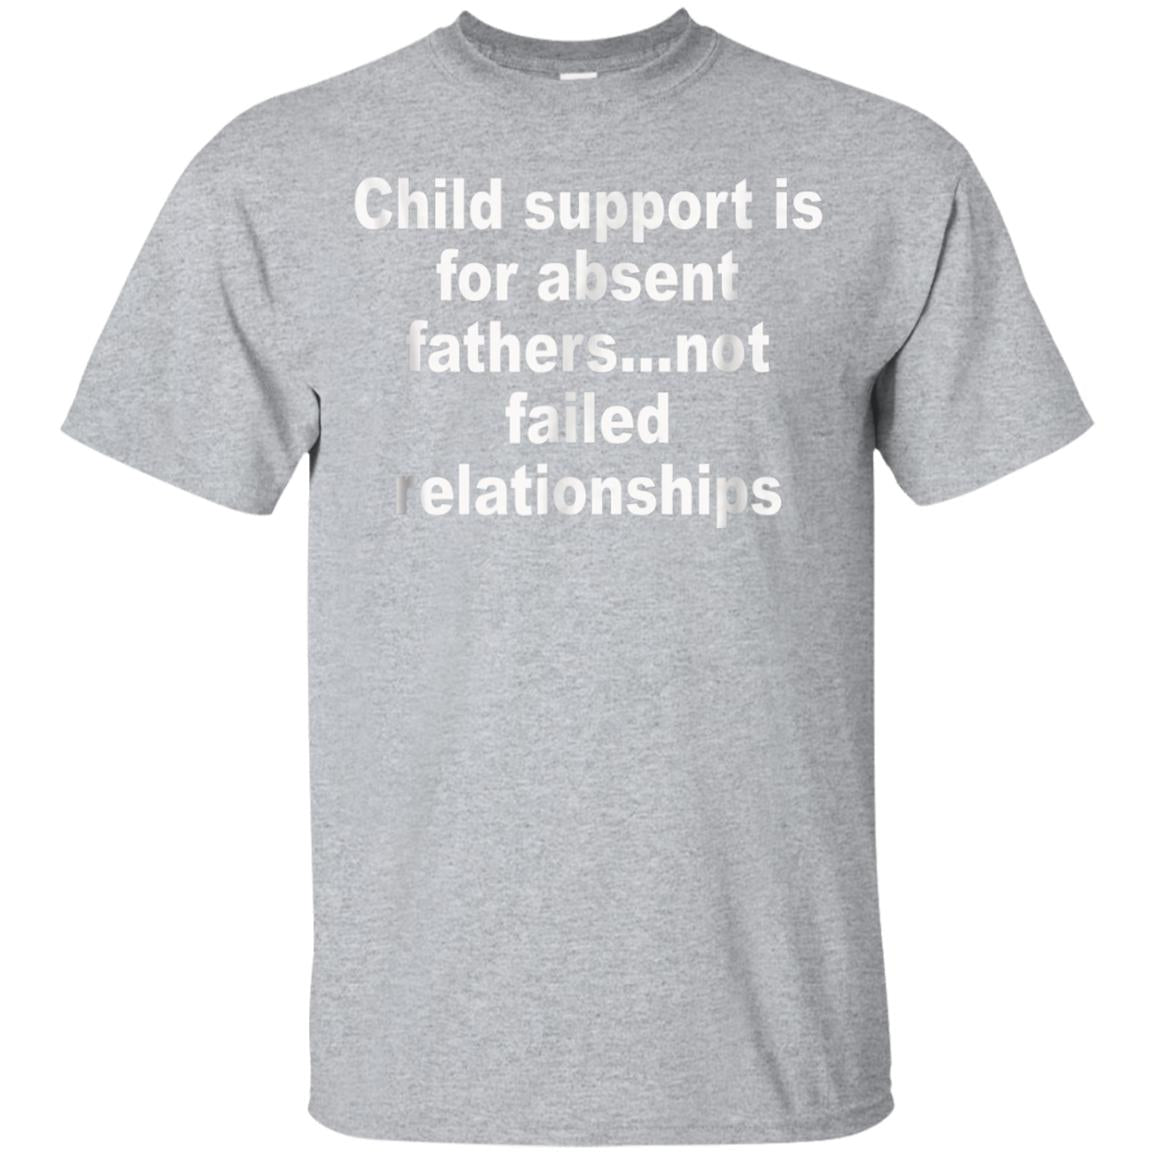 Child support is for absent fathers,not failed relationships 99promocode